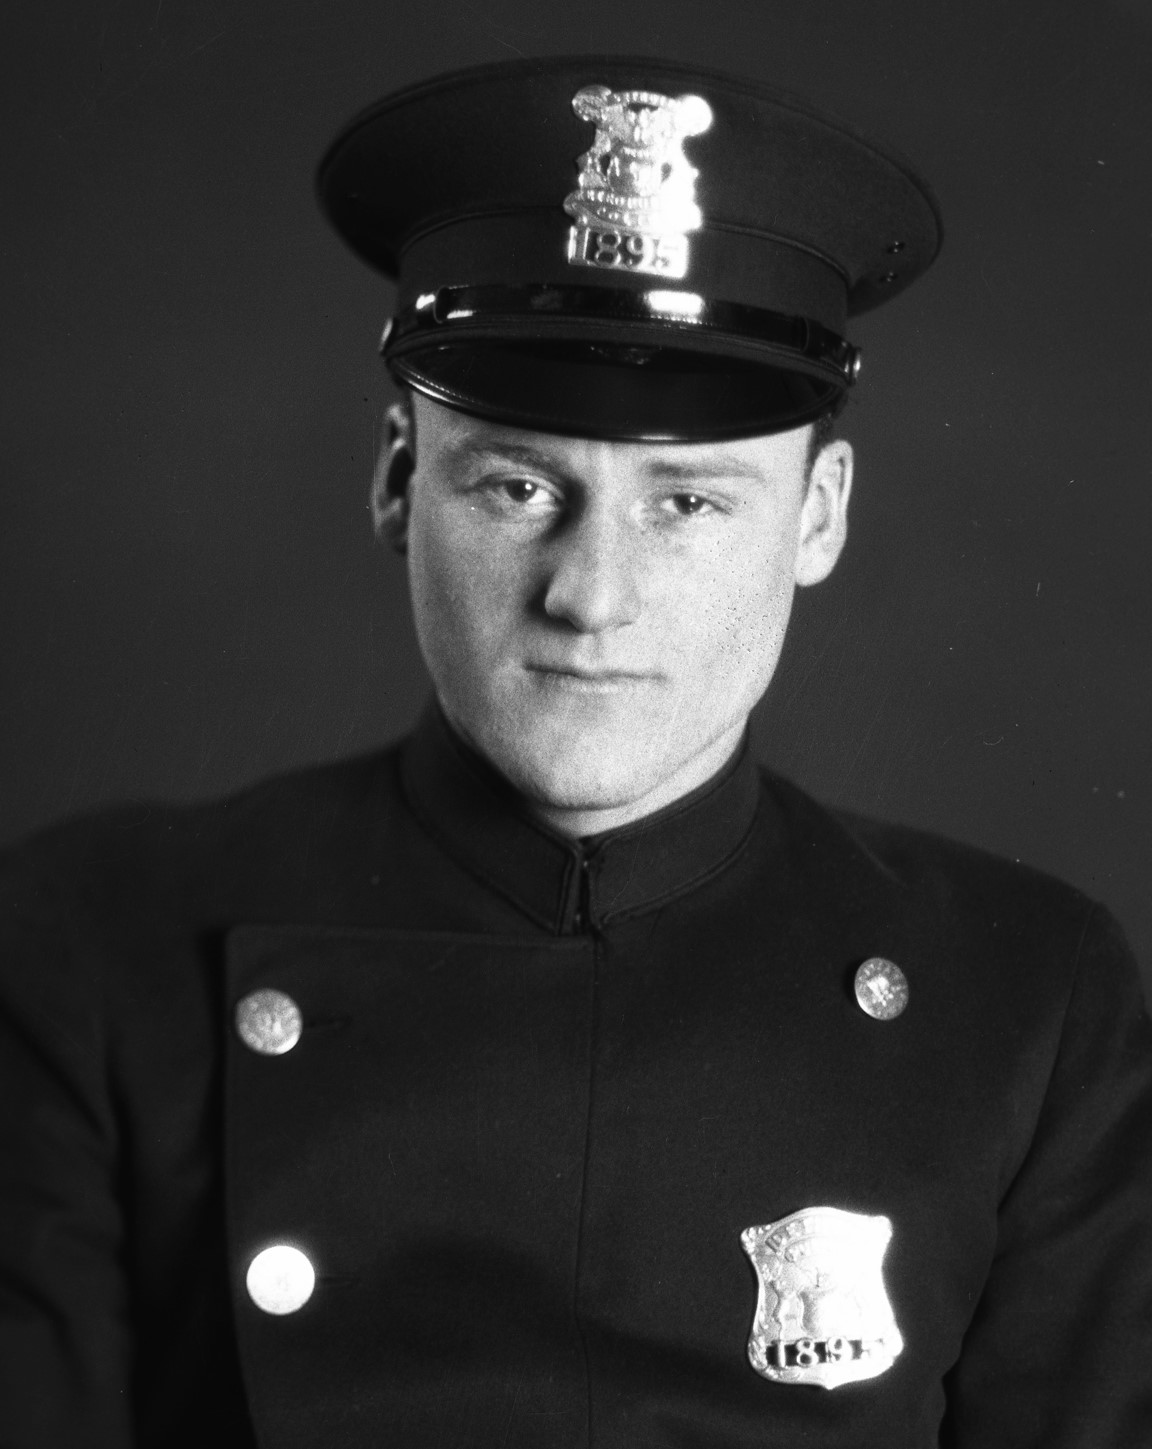 Police Officer Herman M. Jolly | Detroit Police Department, Michigan